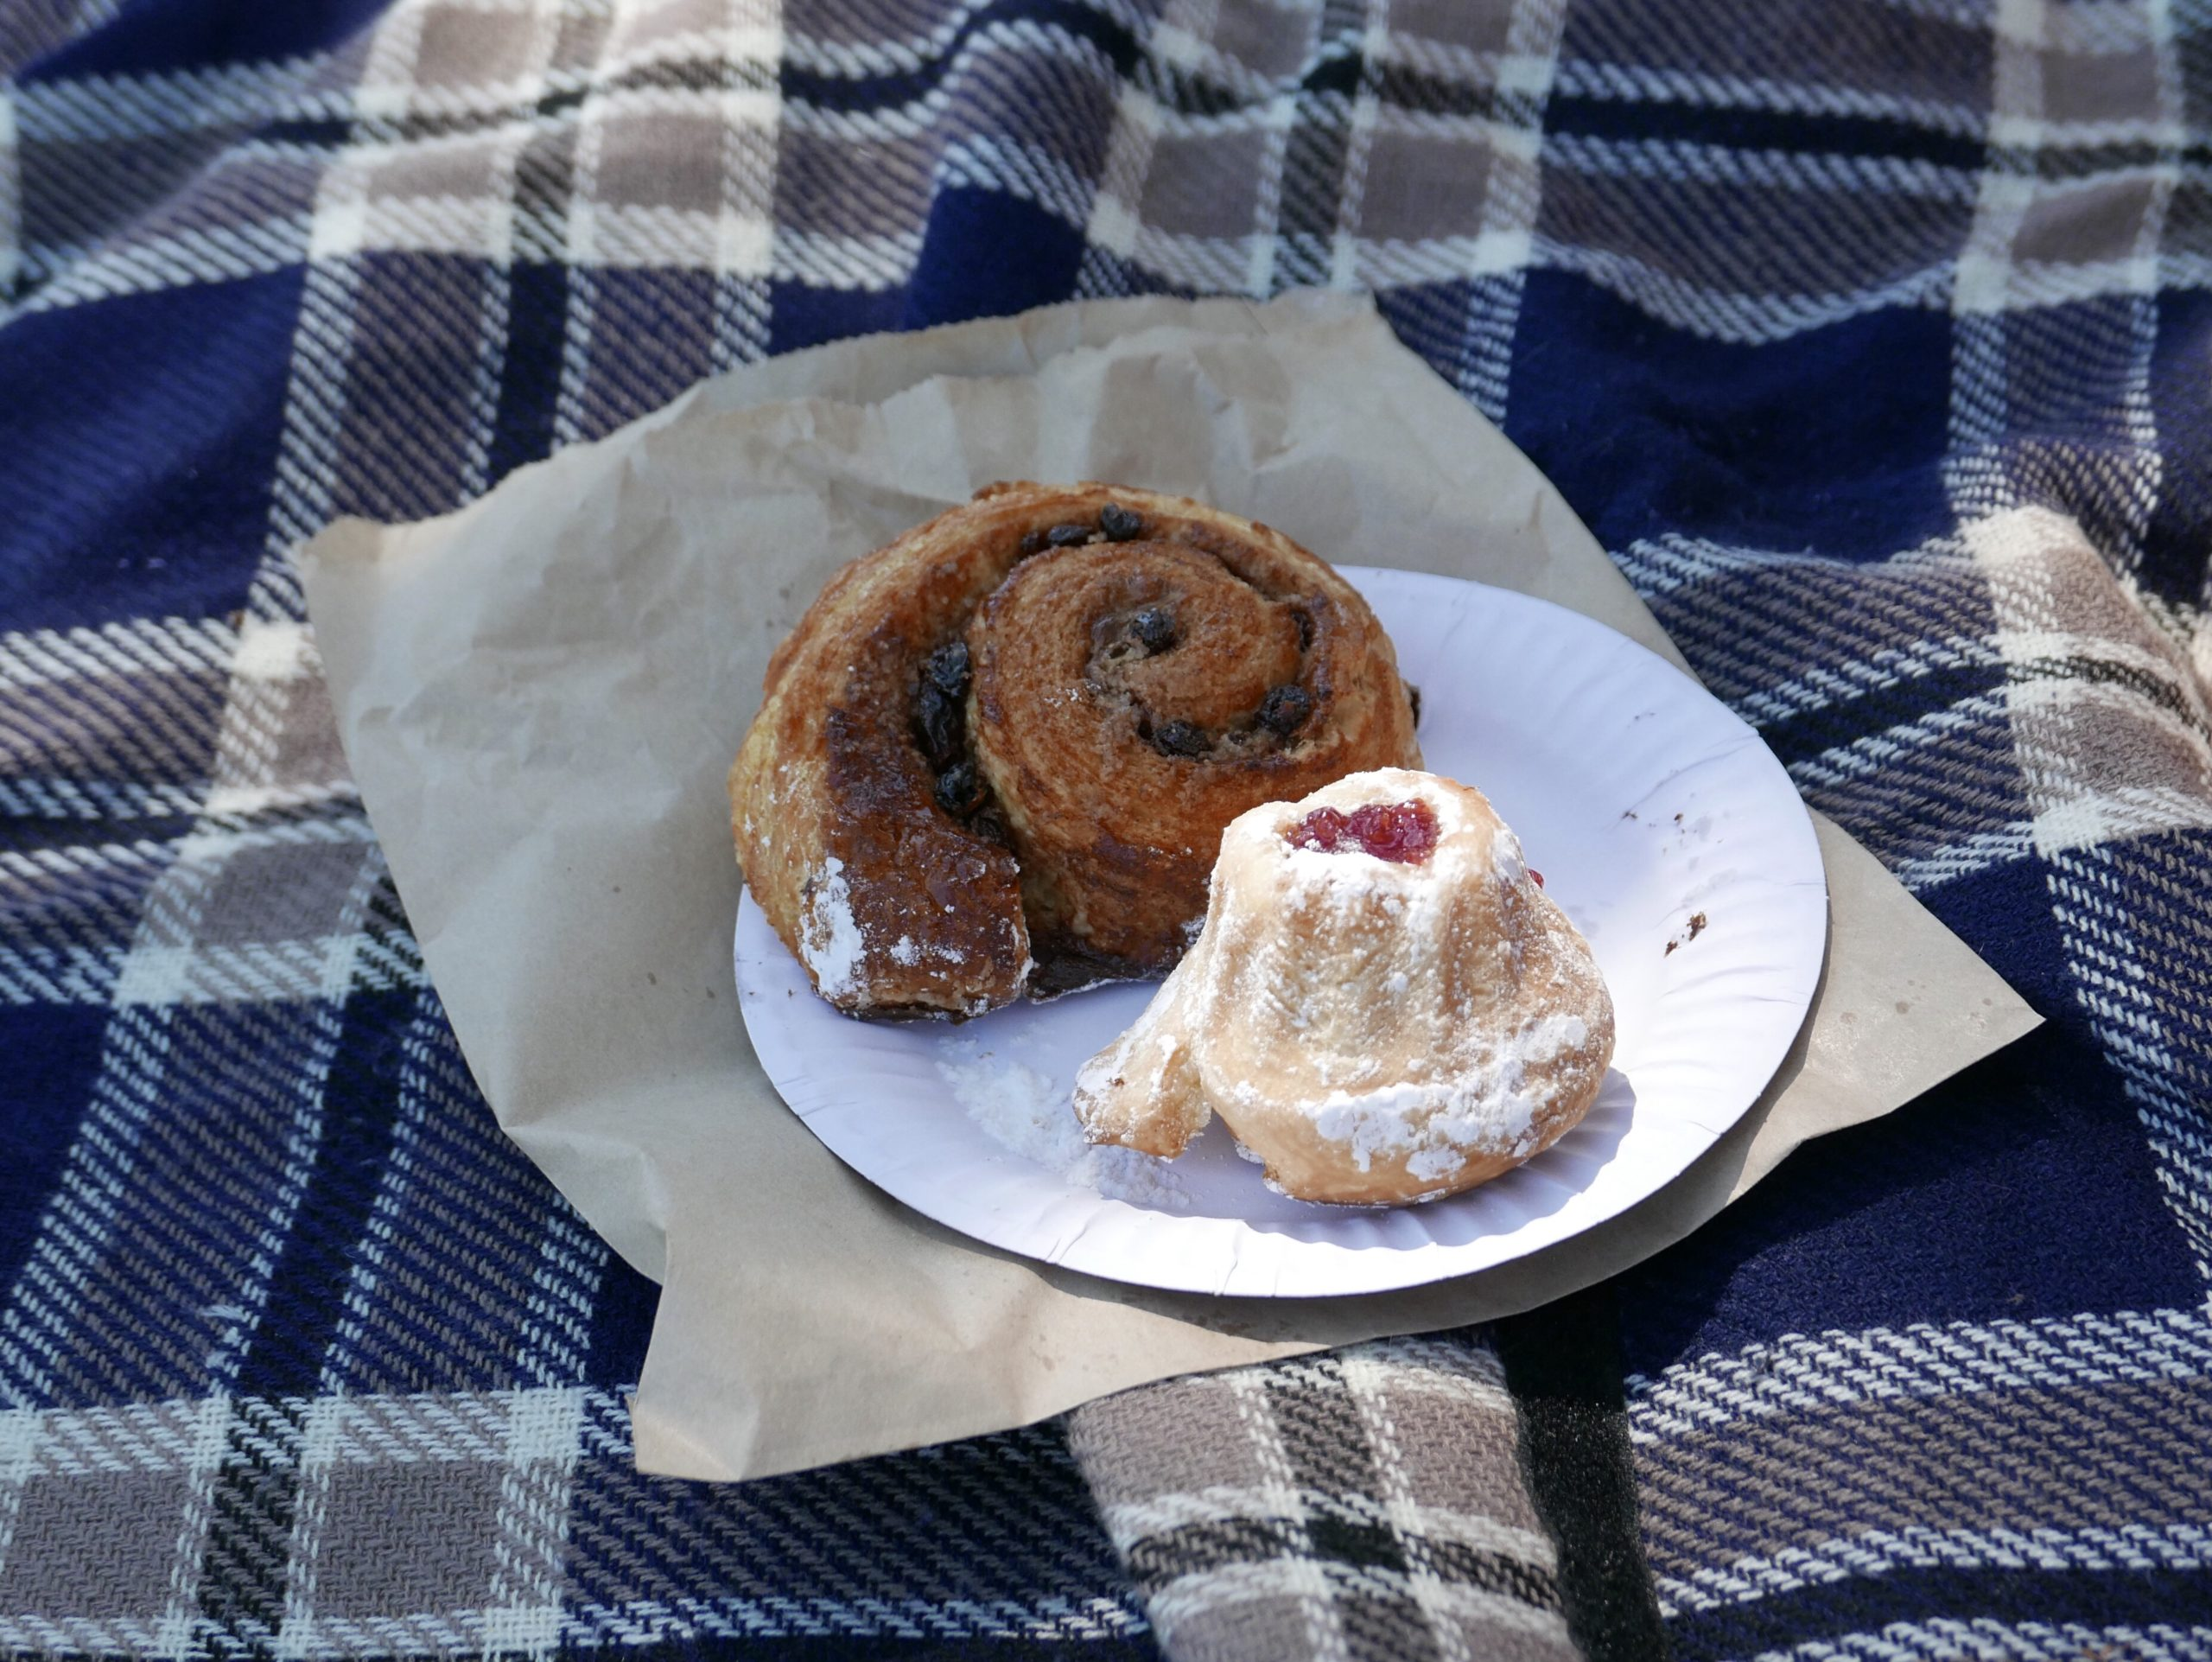 An escargot and a gugelhupf, on a plate on a picnic blanket